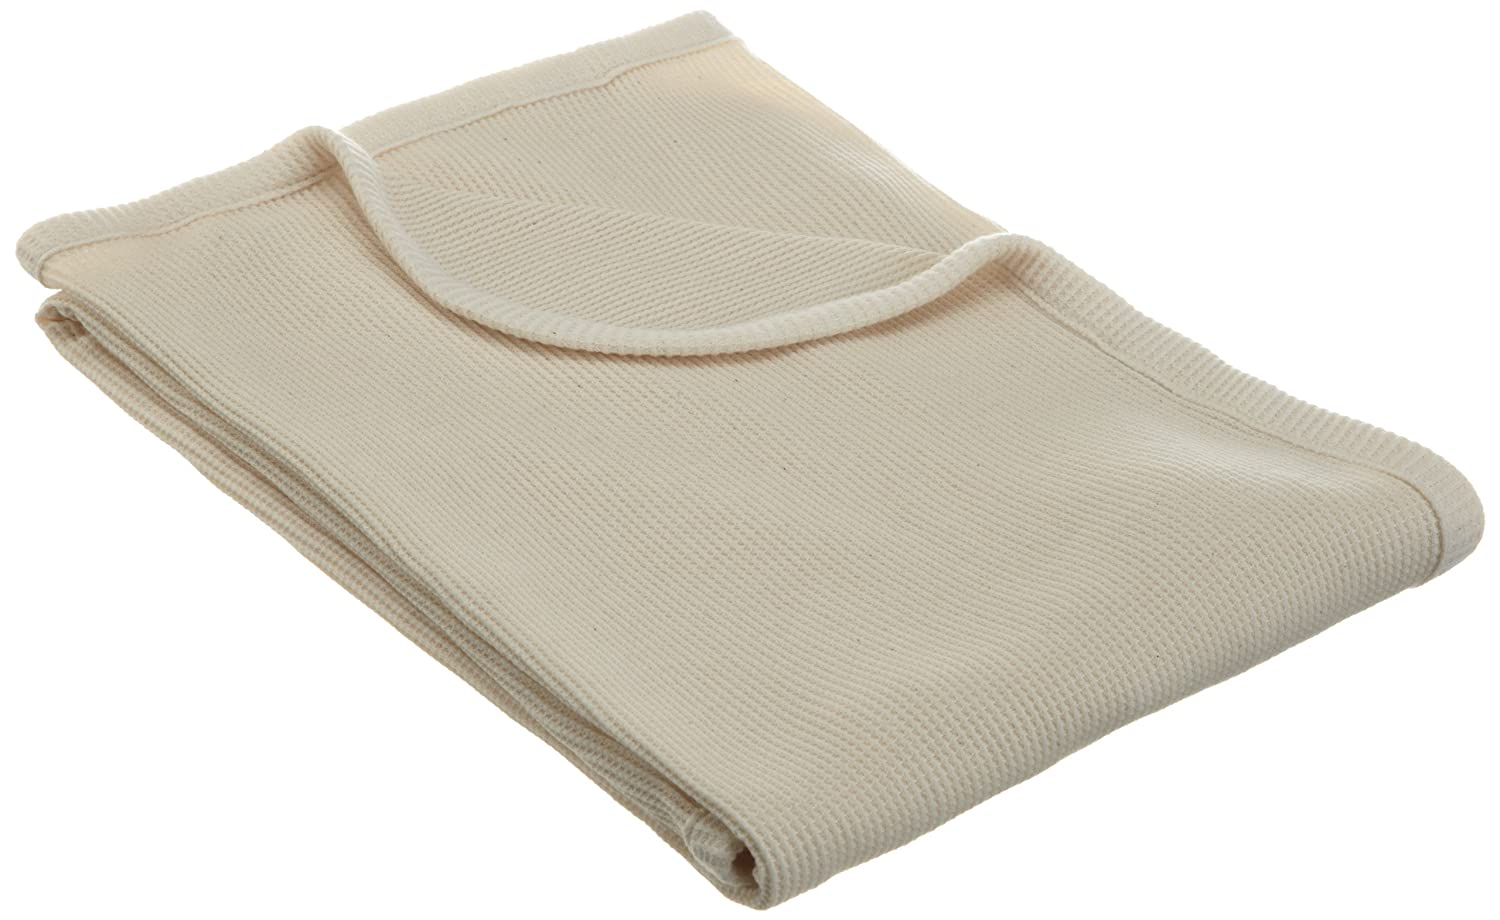 American Baby Company 13308 Organic Cotton Thermal Blanket (Natural)